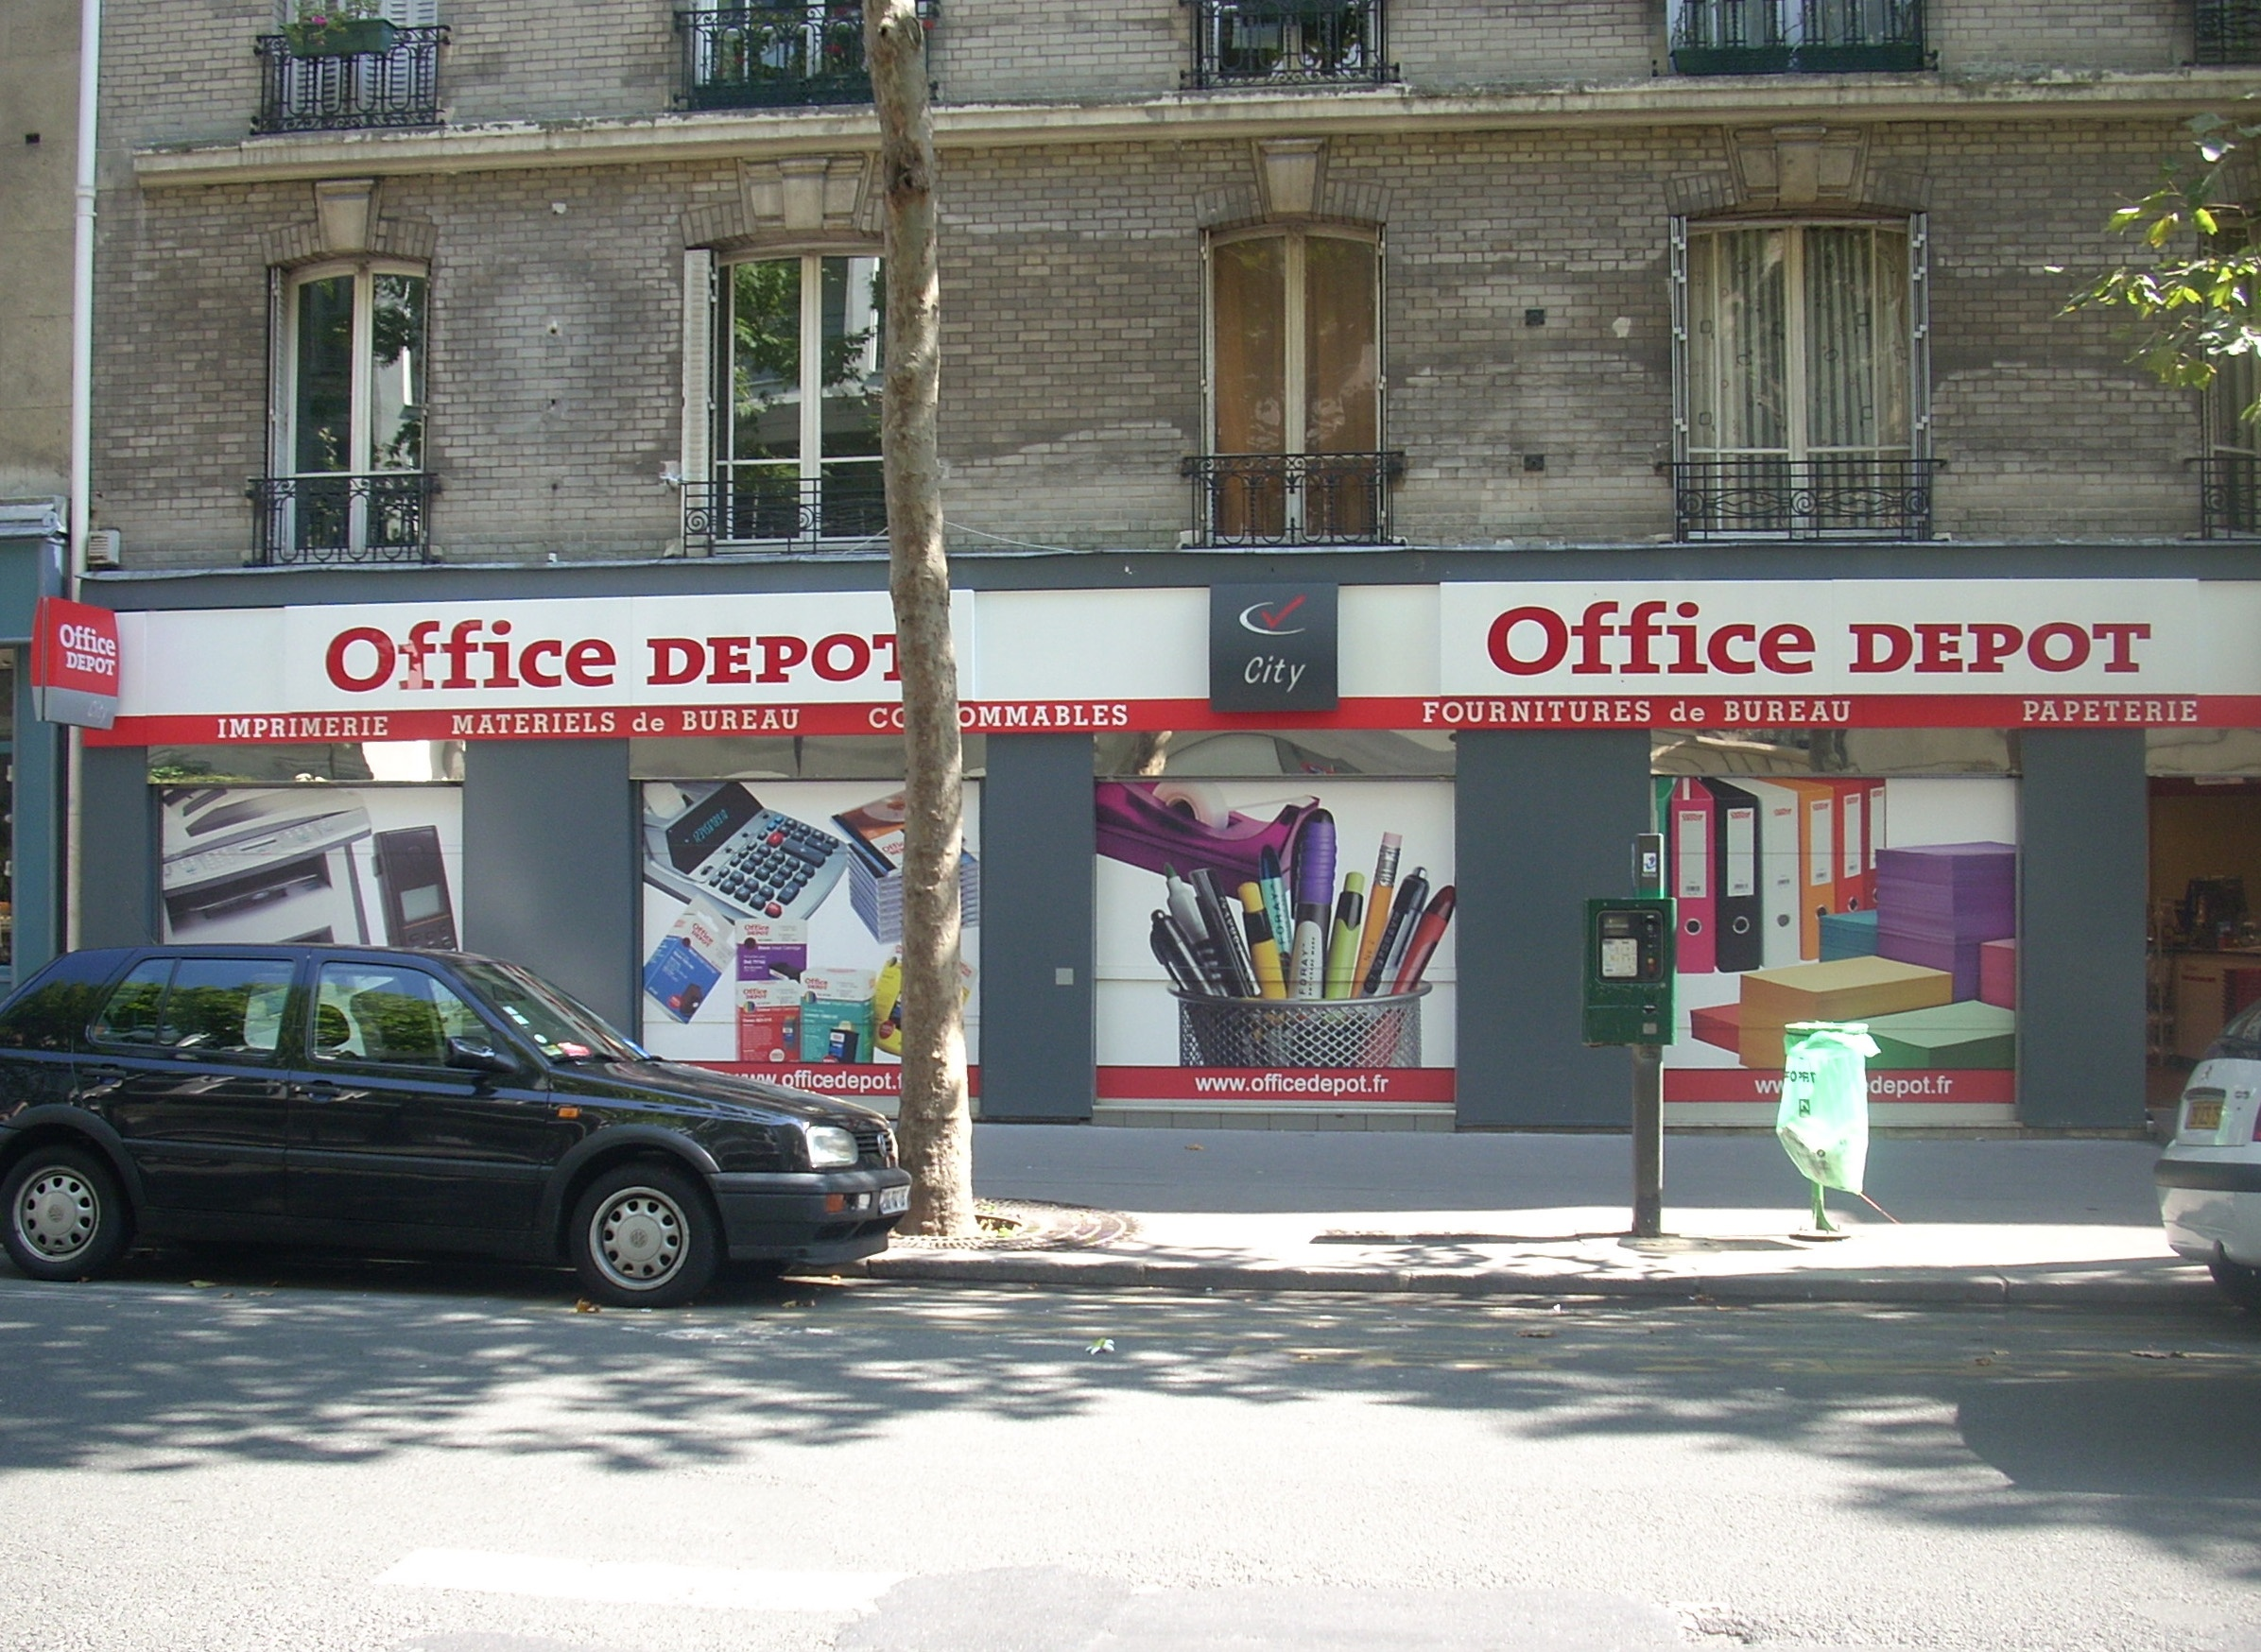 Magasin office depot paris ème versailles fournitures